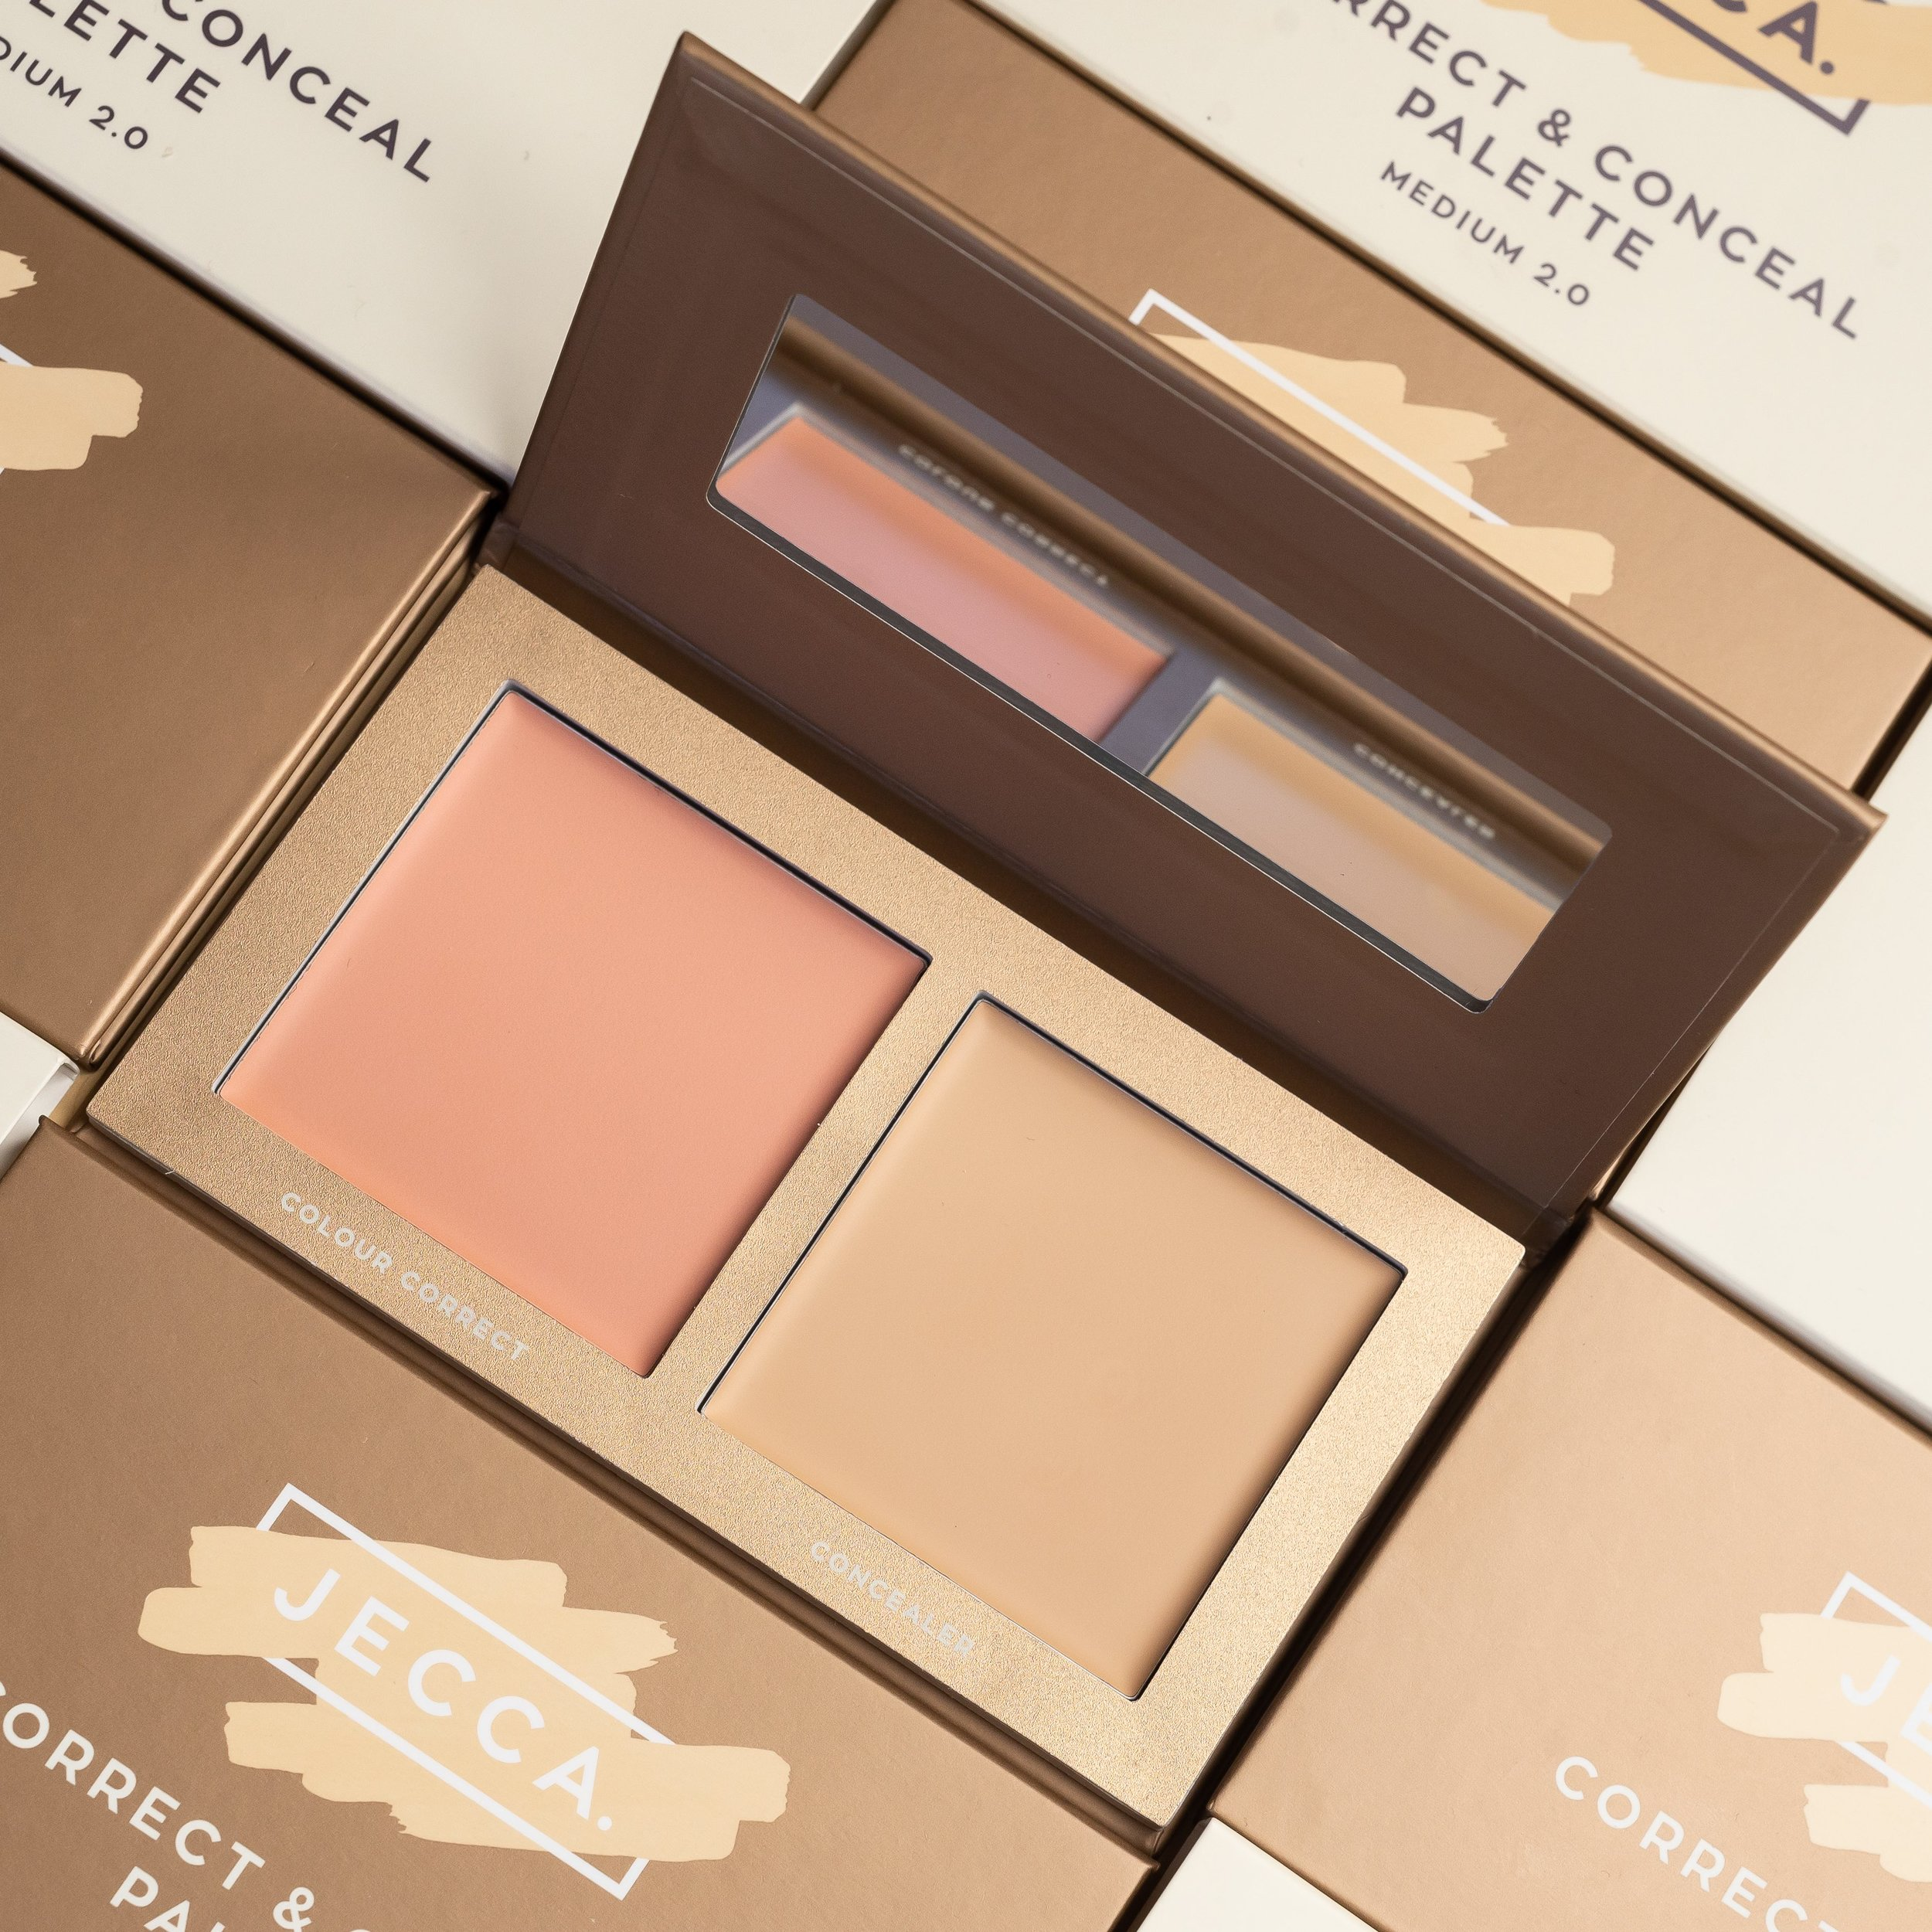 Jecca Makeup Correct & Conceal Palettes - lifestyle.jpg